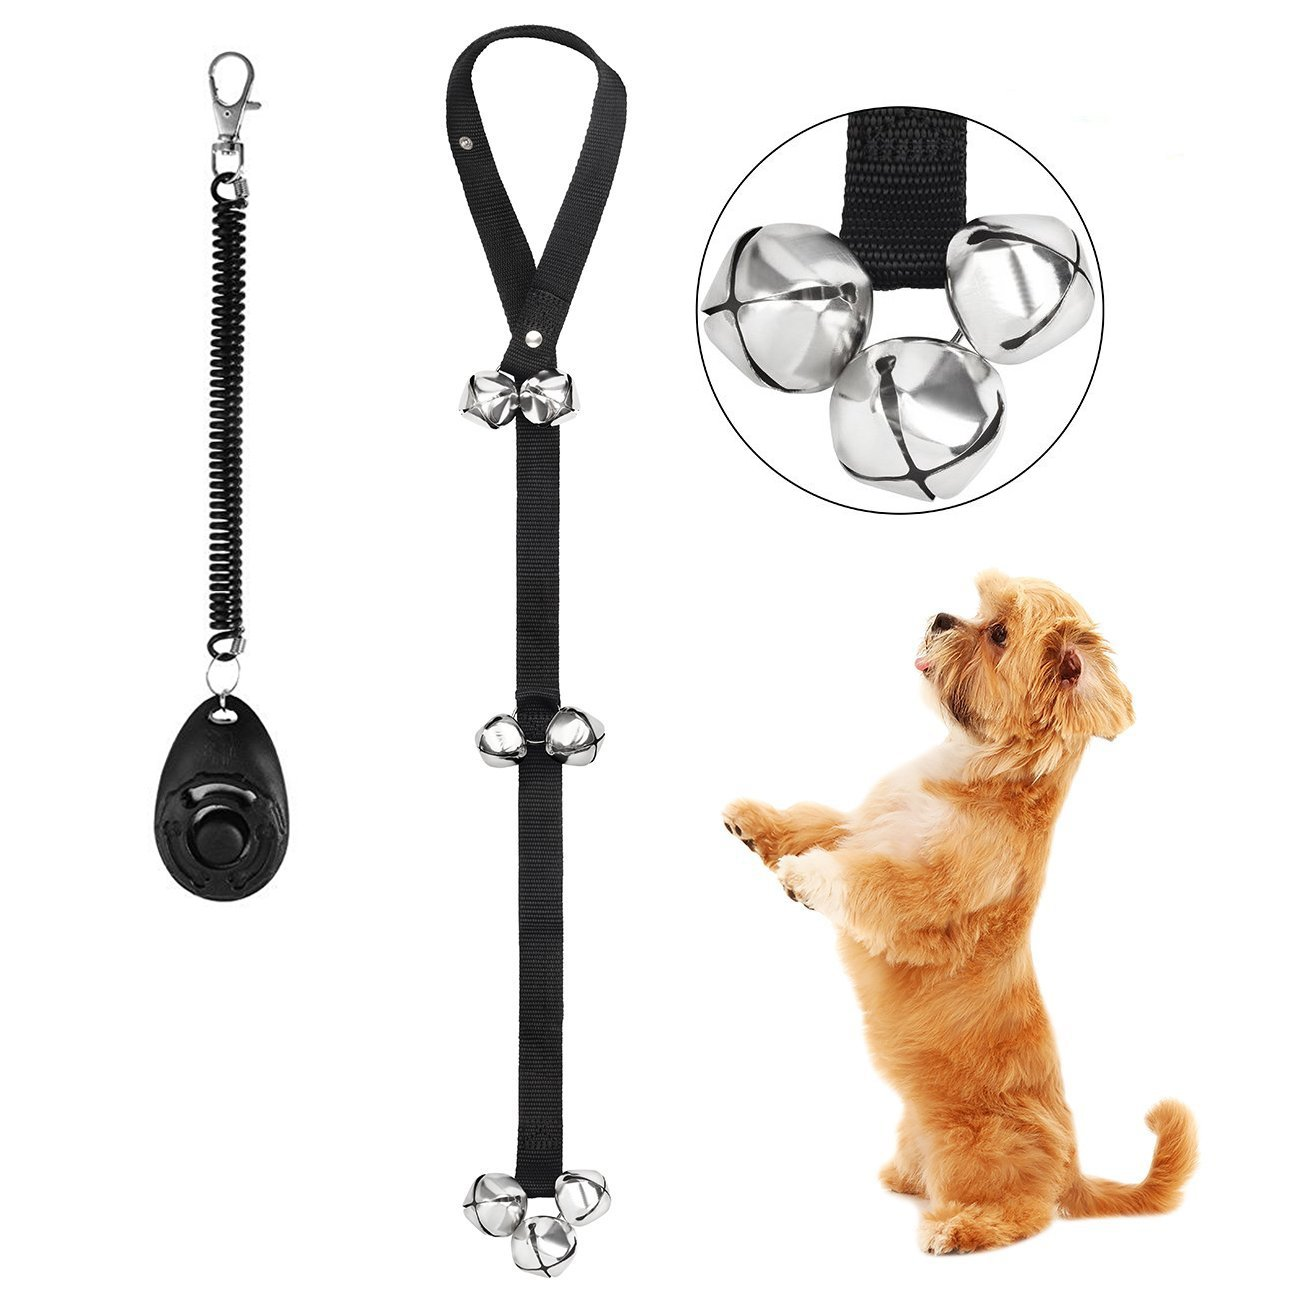 Cheap Dog Training Bell Find Dog Training Bell Deals On Line At